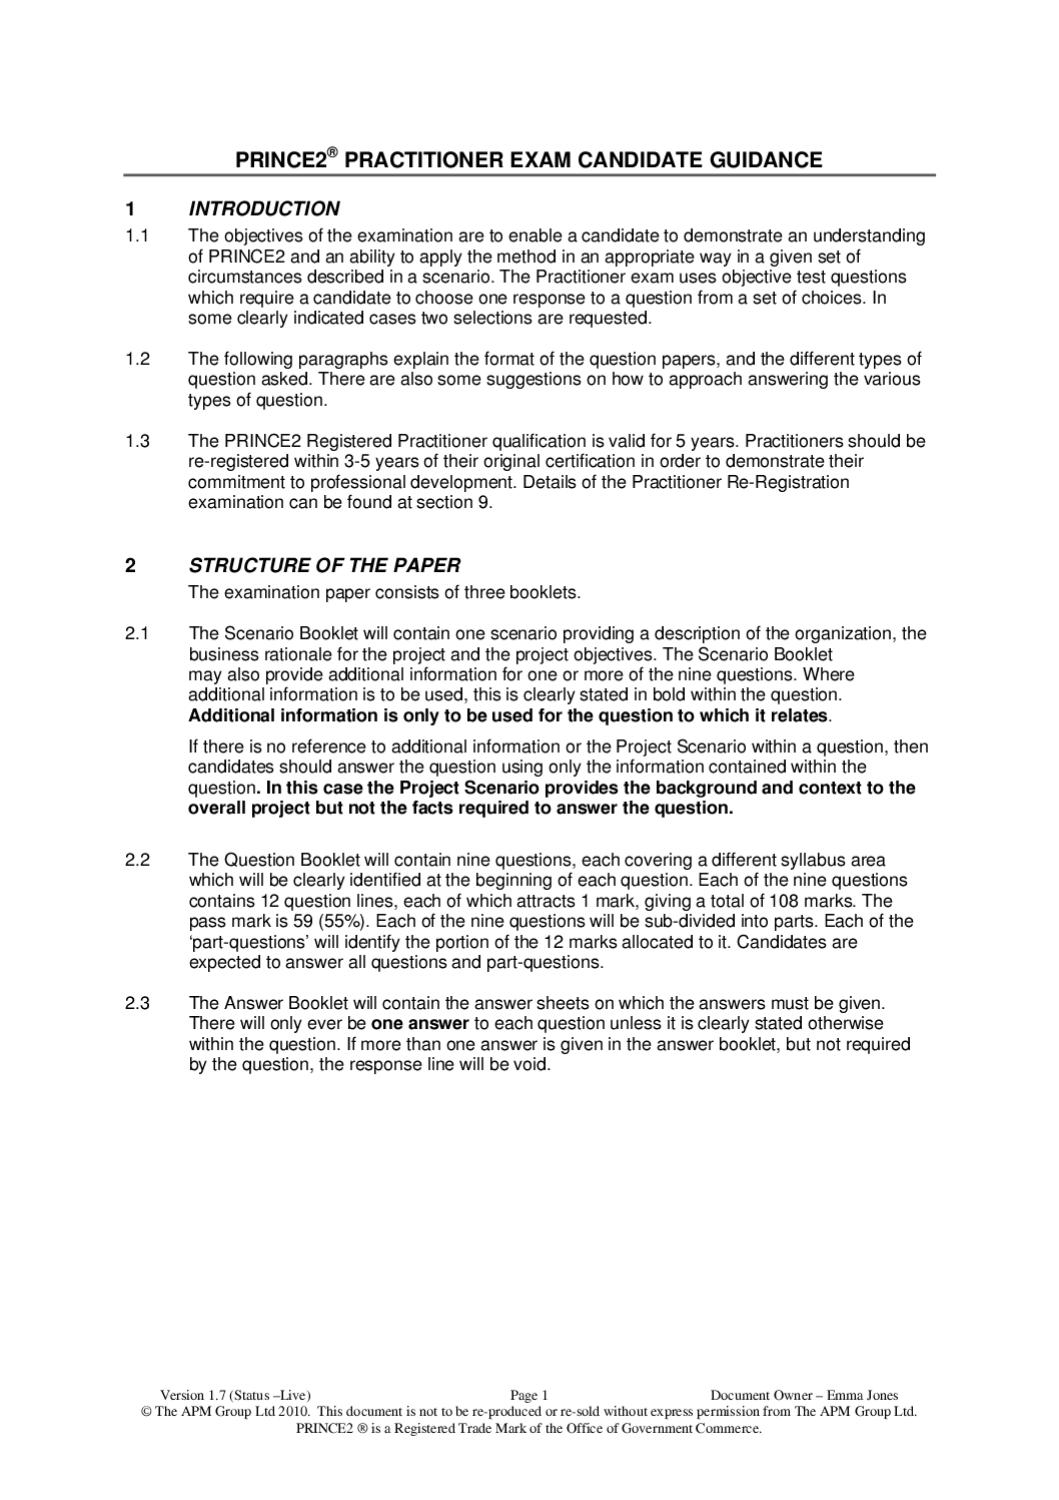 Prince2 practitioner exam candidate guidance by michelangelo prince2 practitioner exam candidate guidance by michelangelo carbone issuu yelopaper Image collections